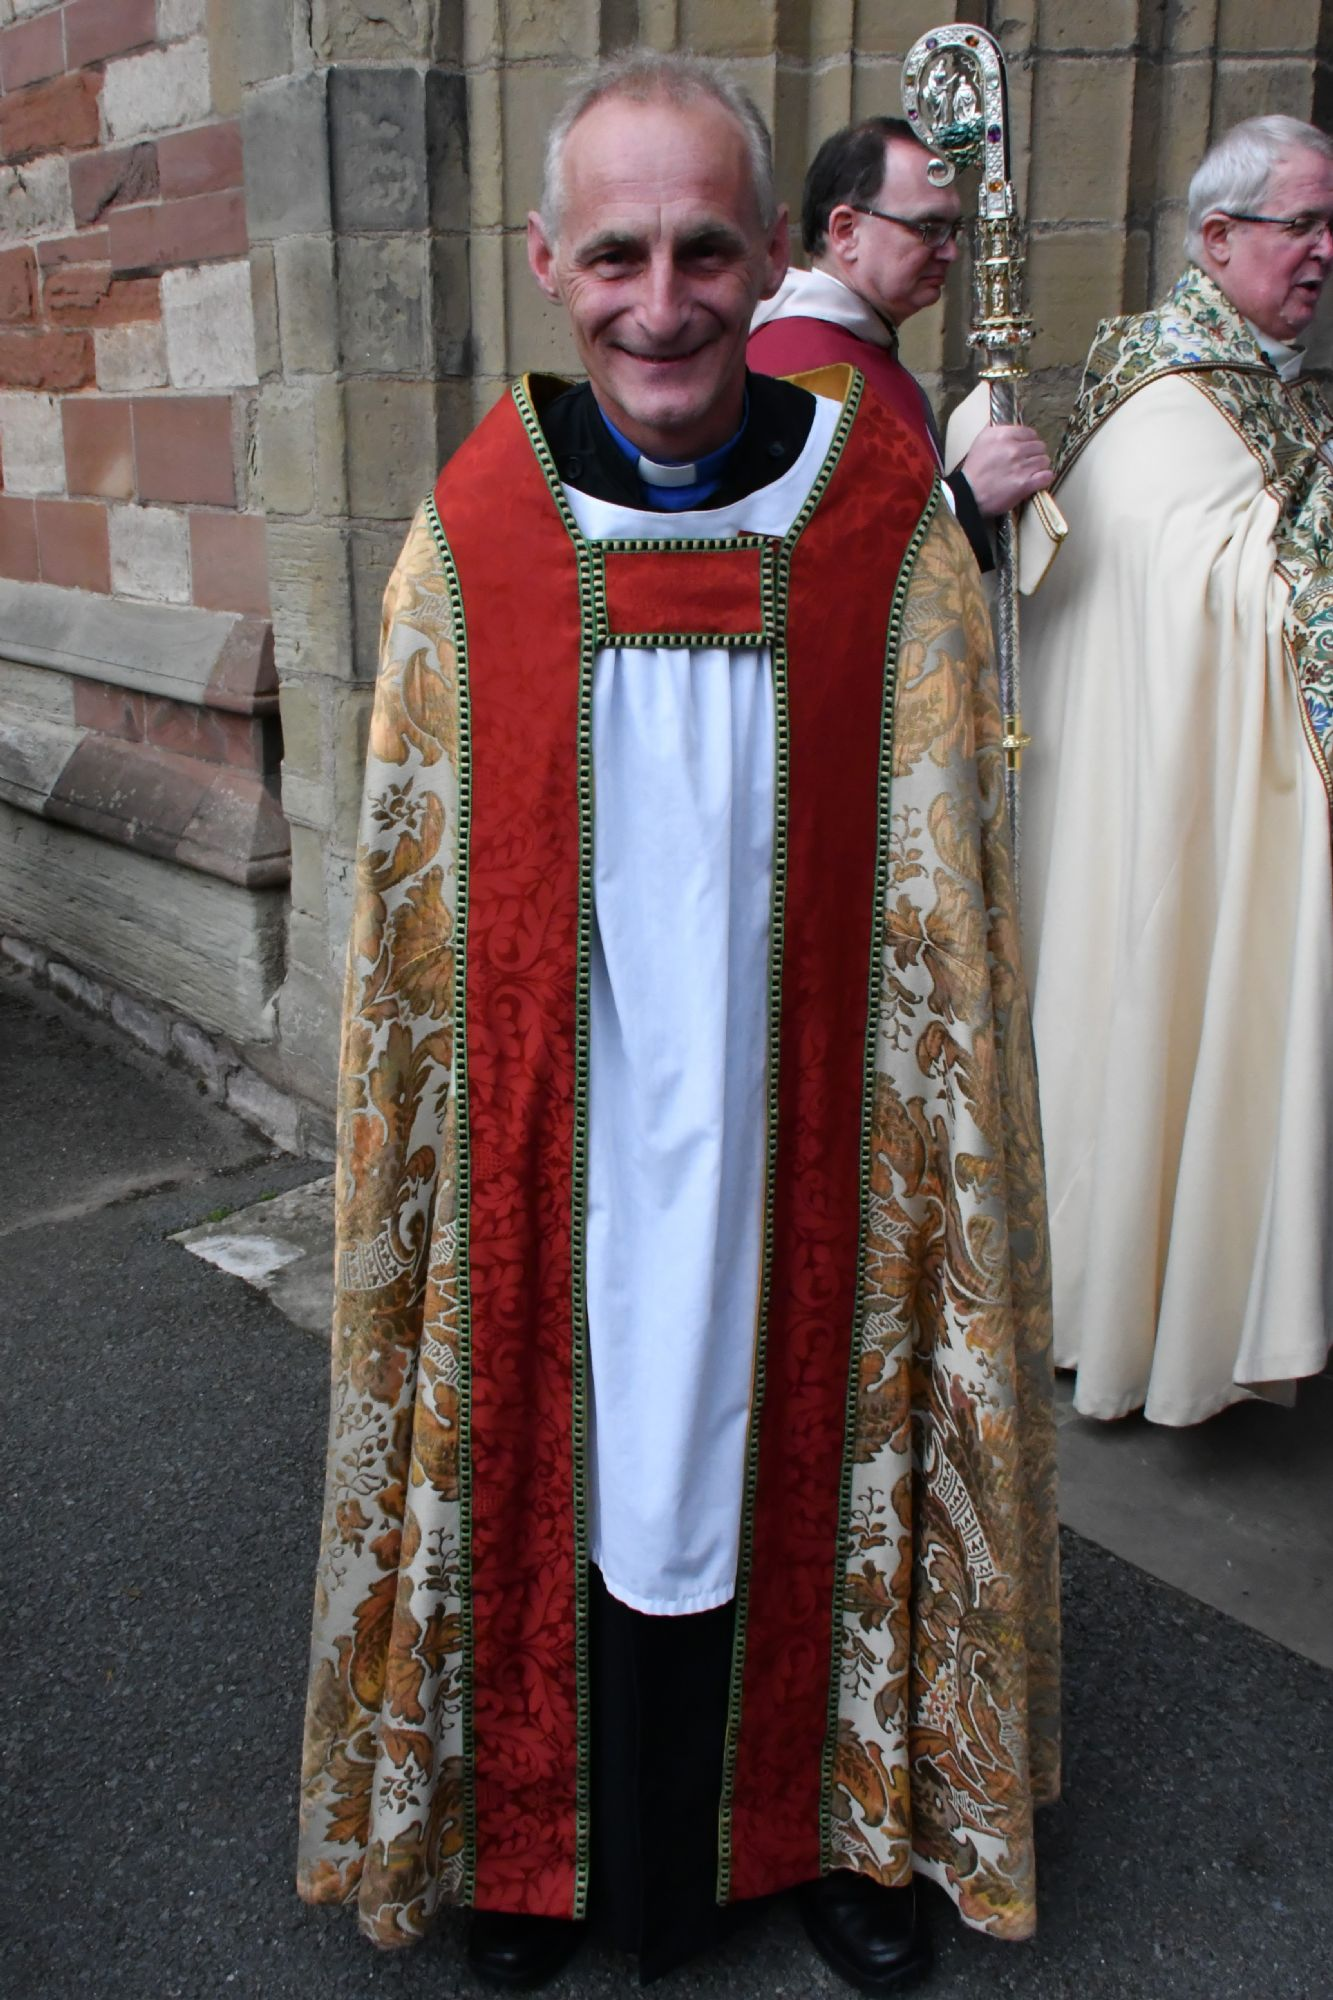 Andy is installed as Archdeacon of St Asaph